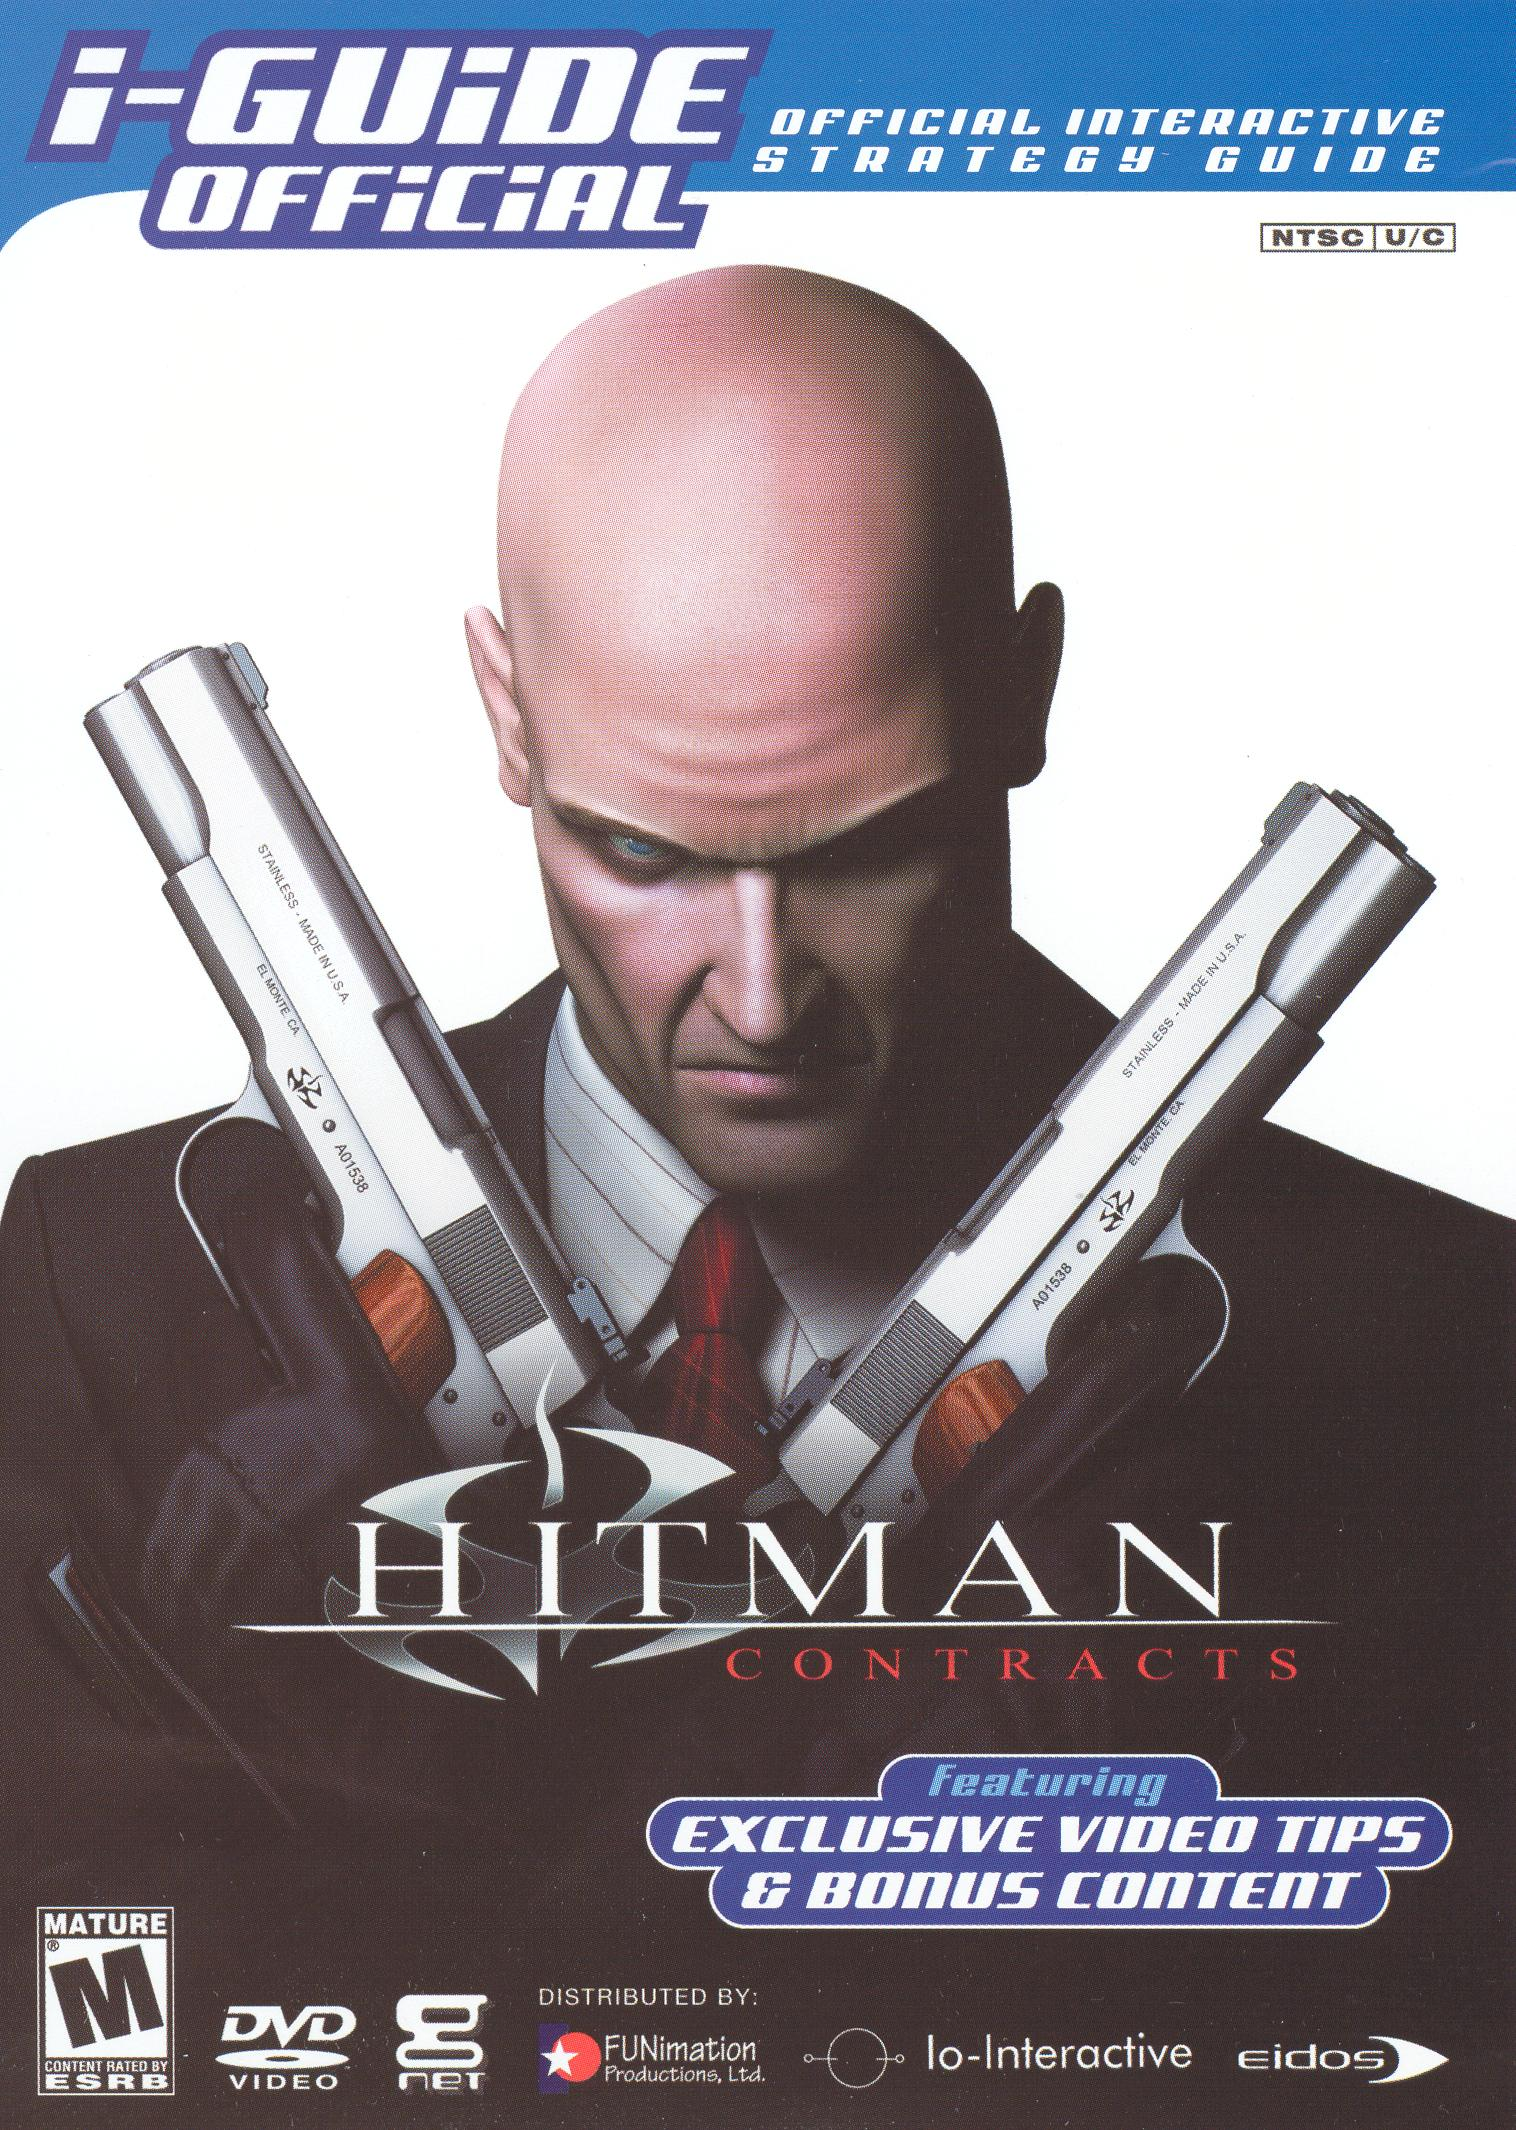 iGuide: Hitman 3 - Contracts